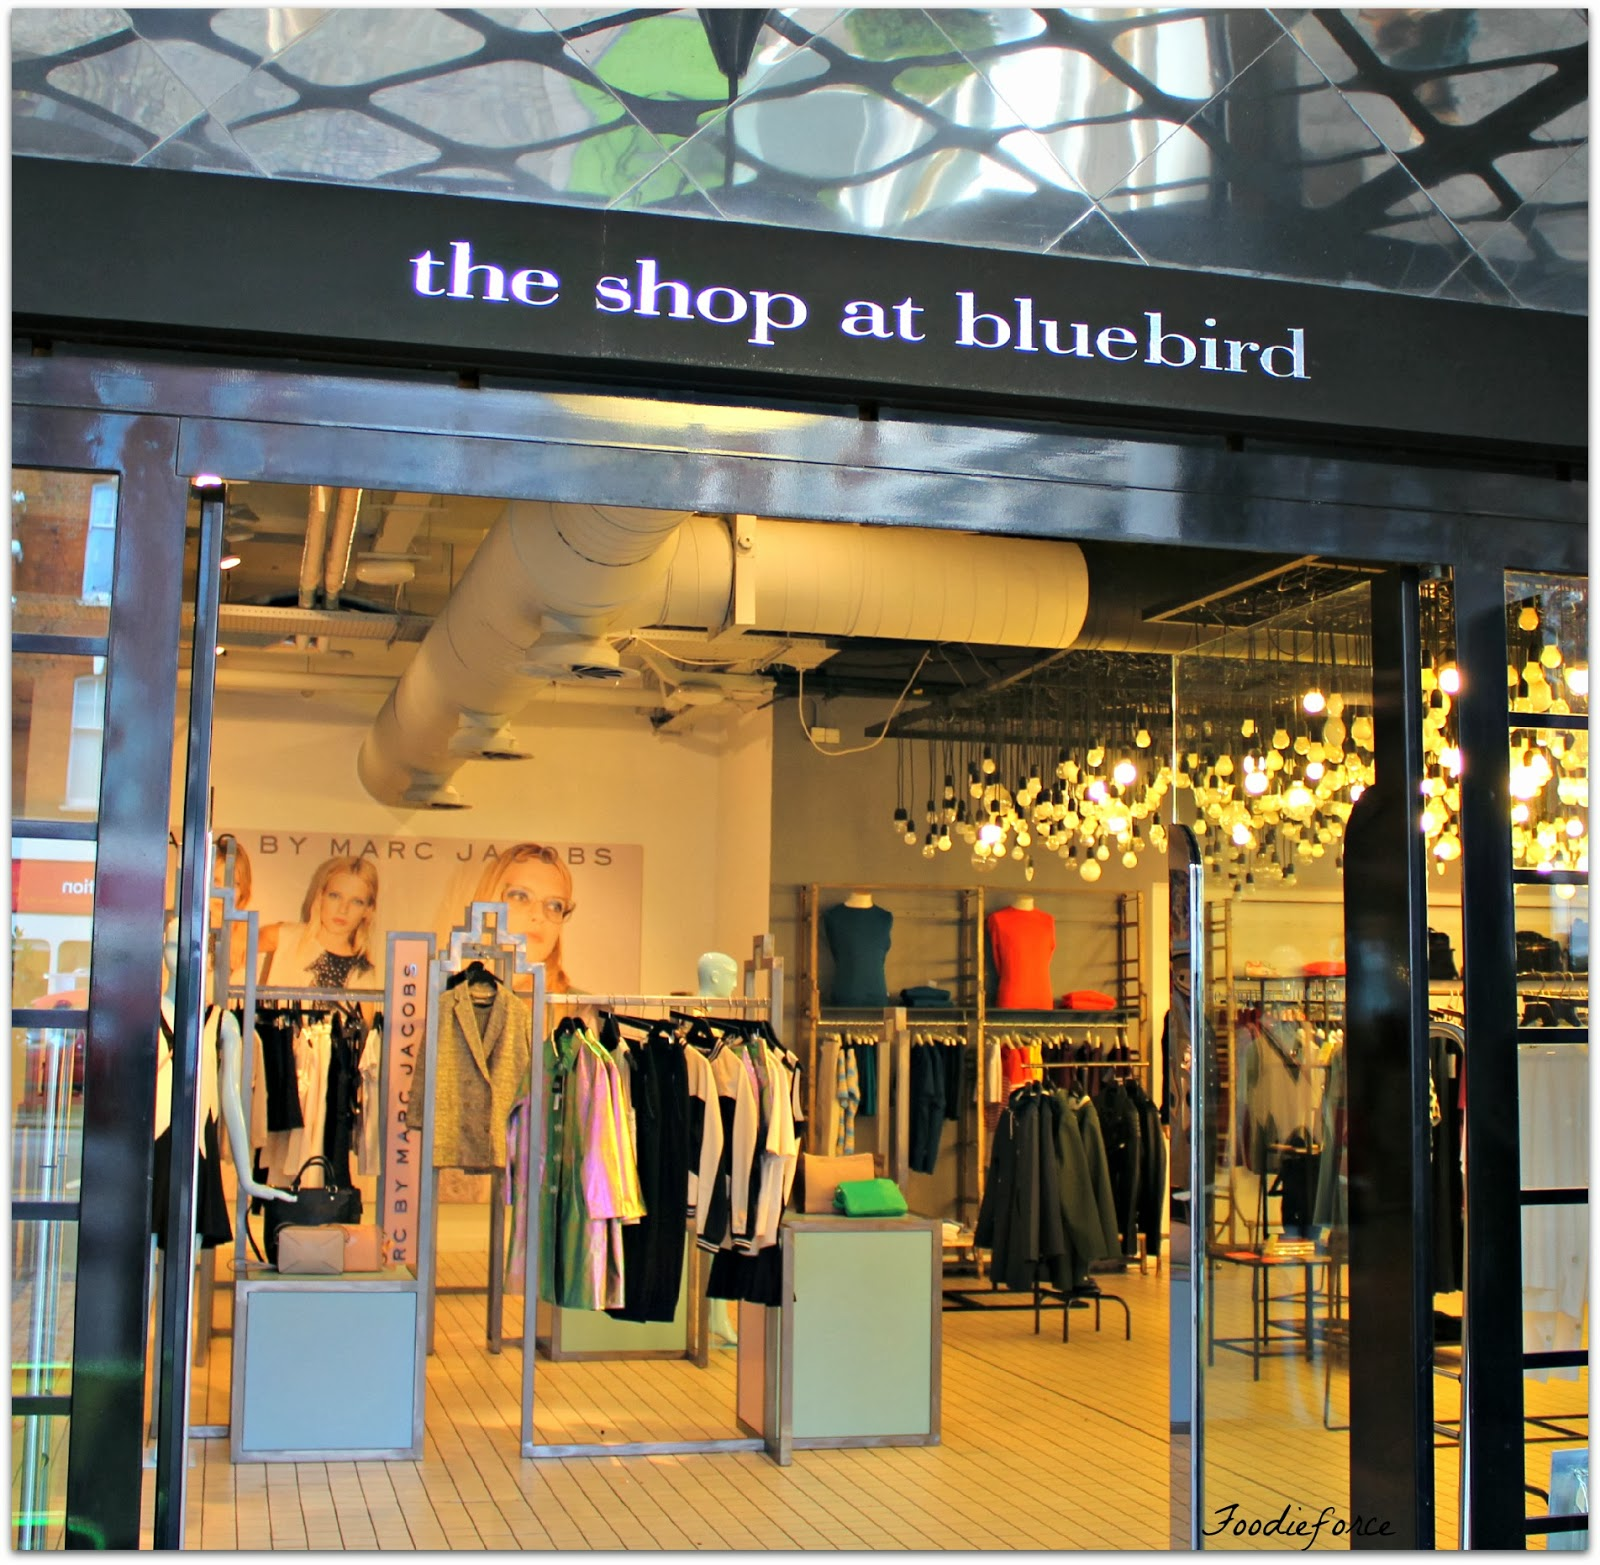 The shop at Bluebird